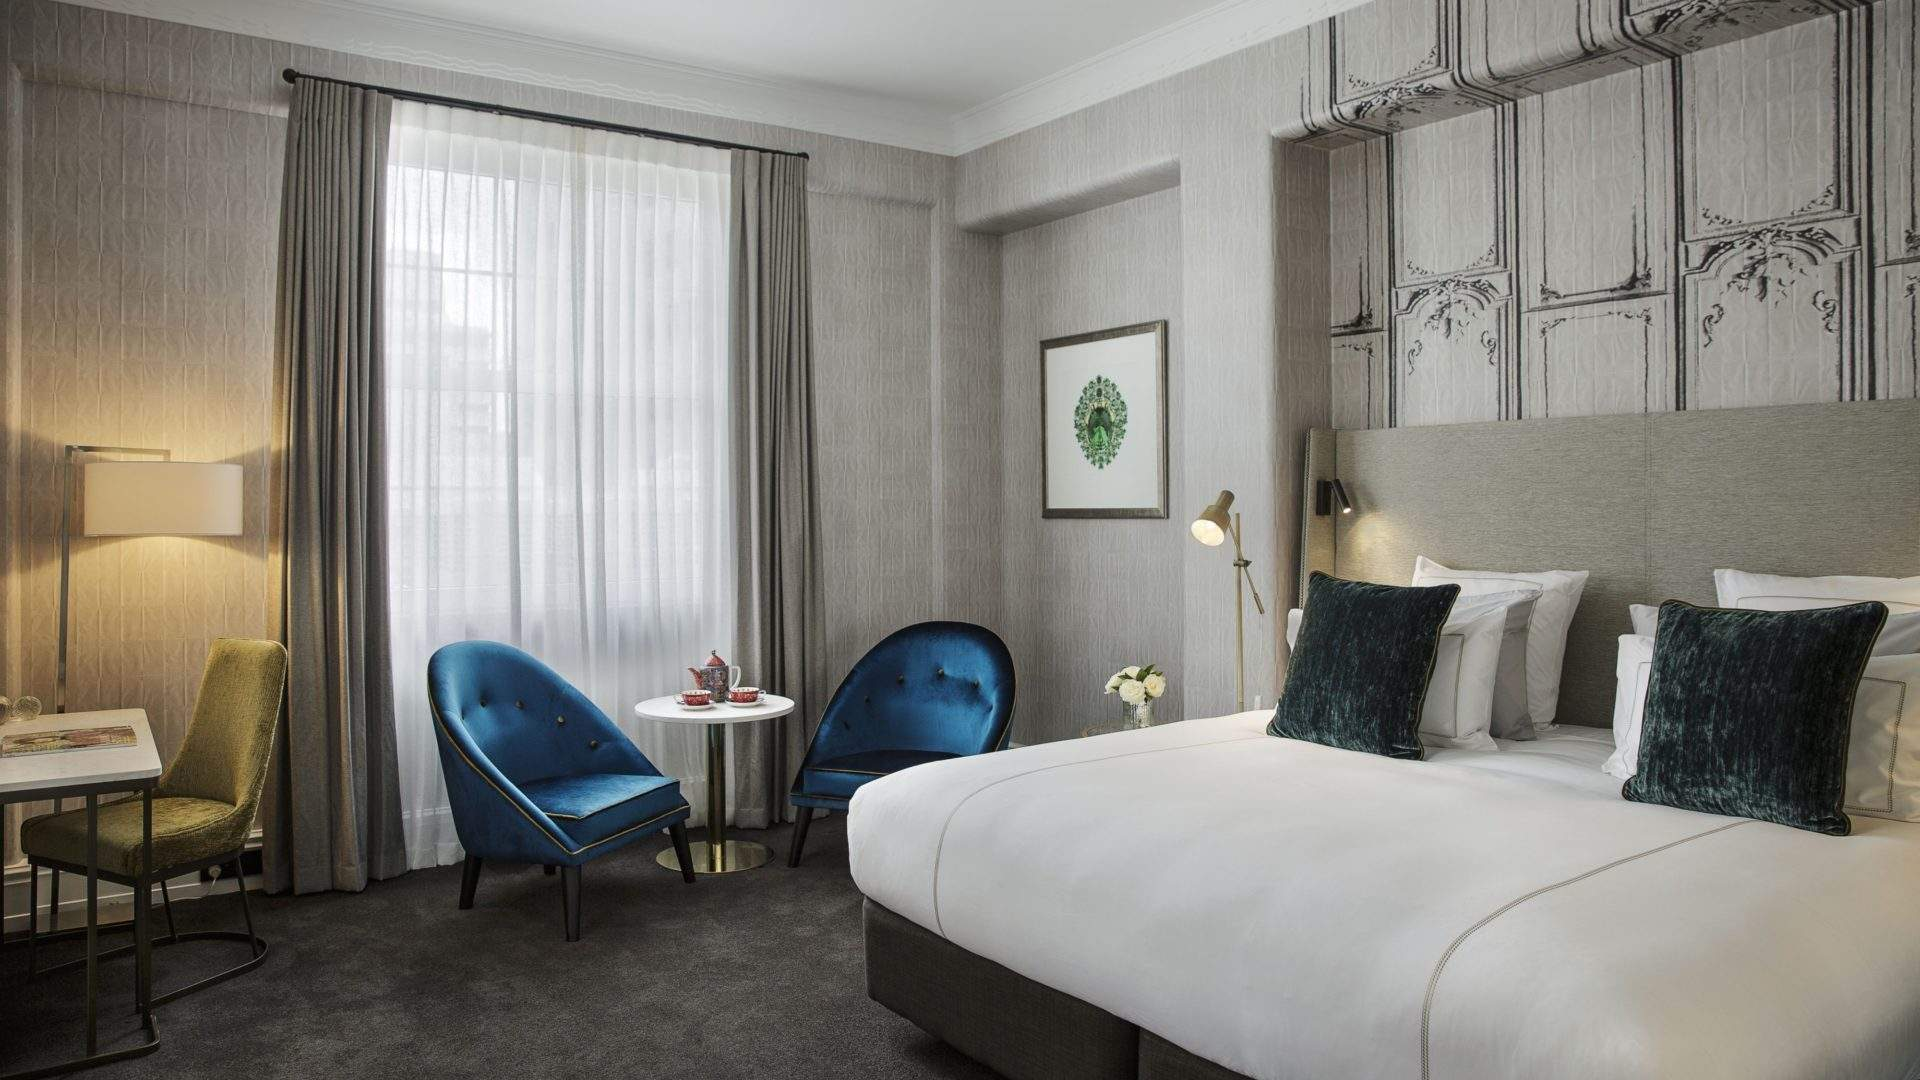 Tim roxborough visits auckland 39 s historic hotel grand for Best boutique hotels auckland